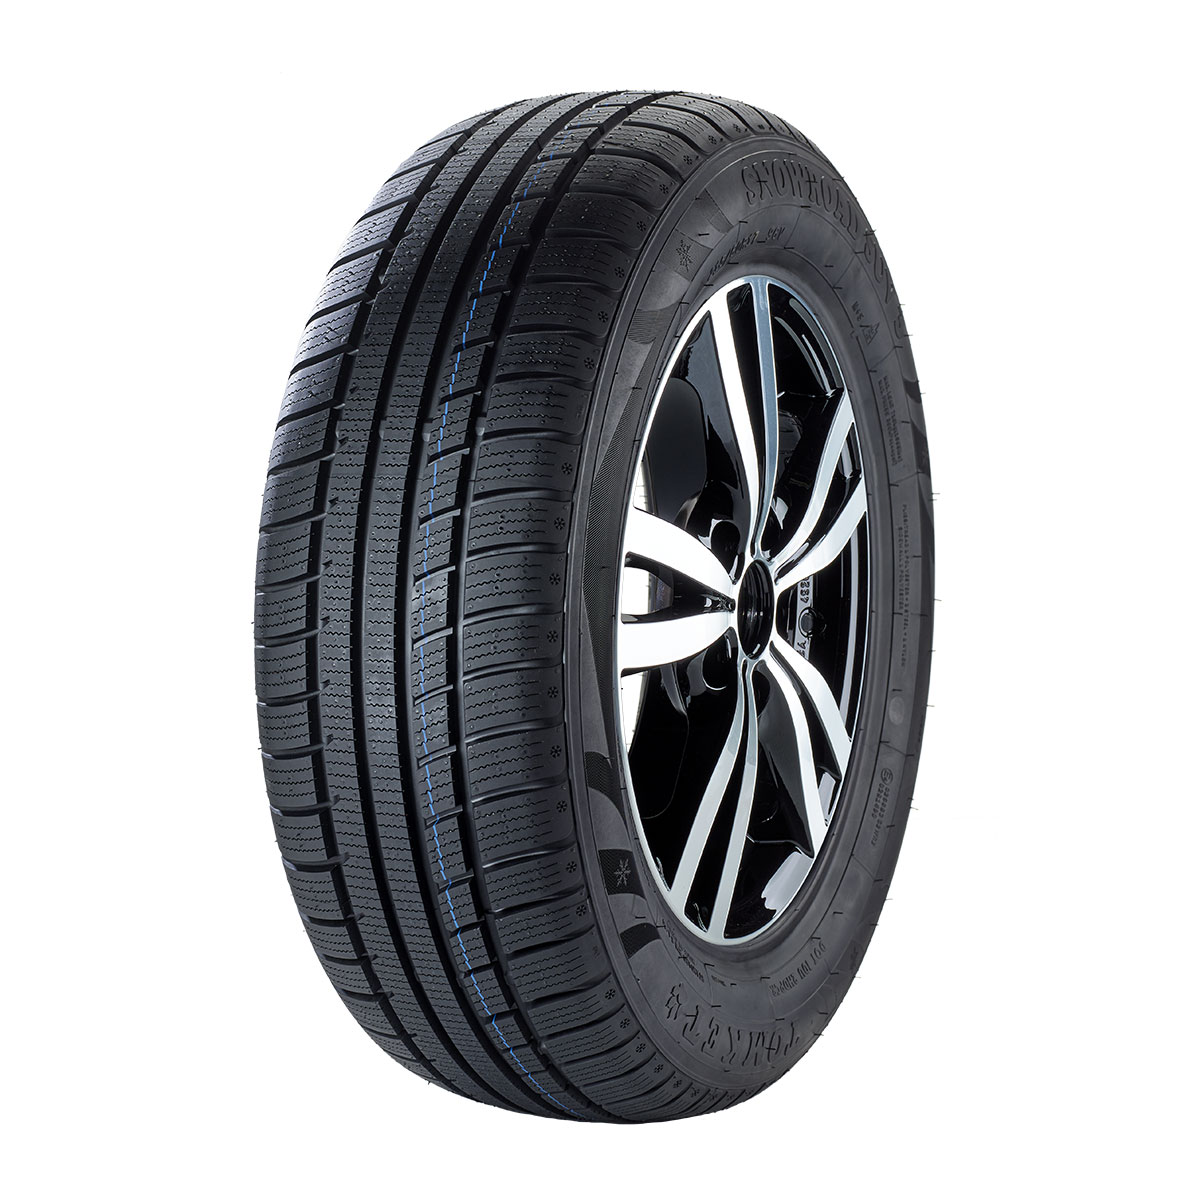 Gomme 4x4 Suv Tomket 215/65 R16 98H SNOWROAD SUV 3 M+S Invernale